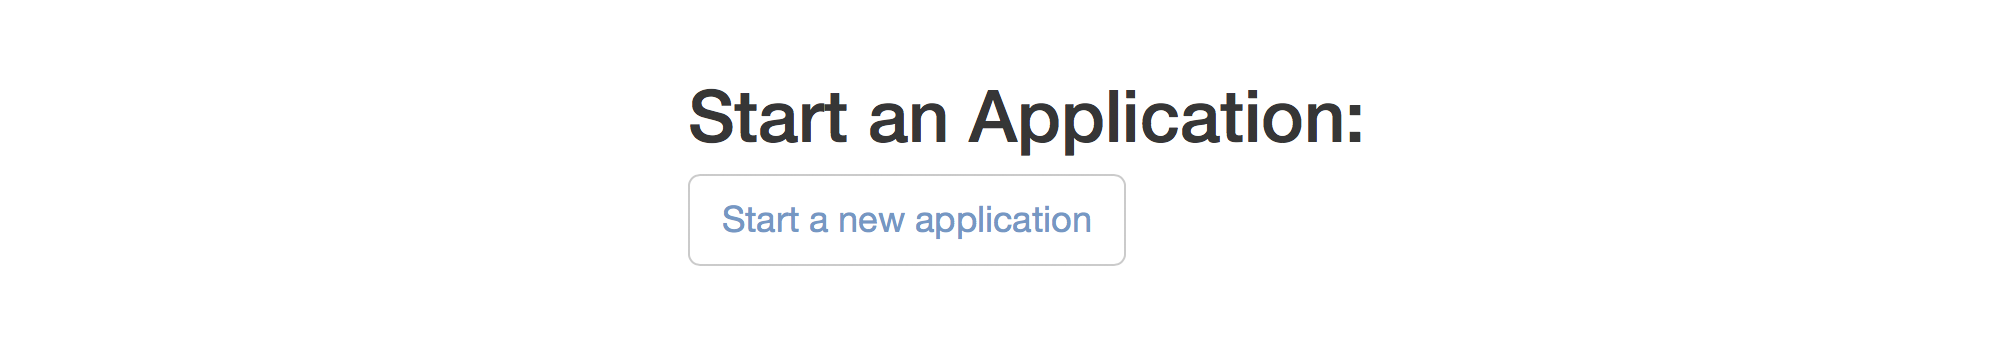 Start a New Application Button